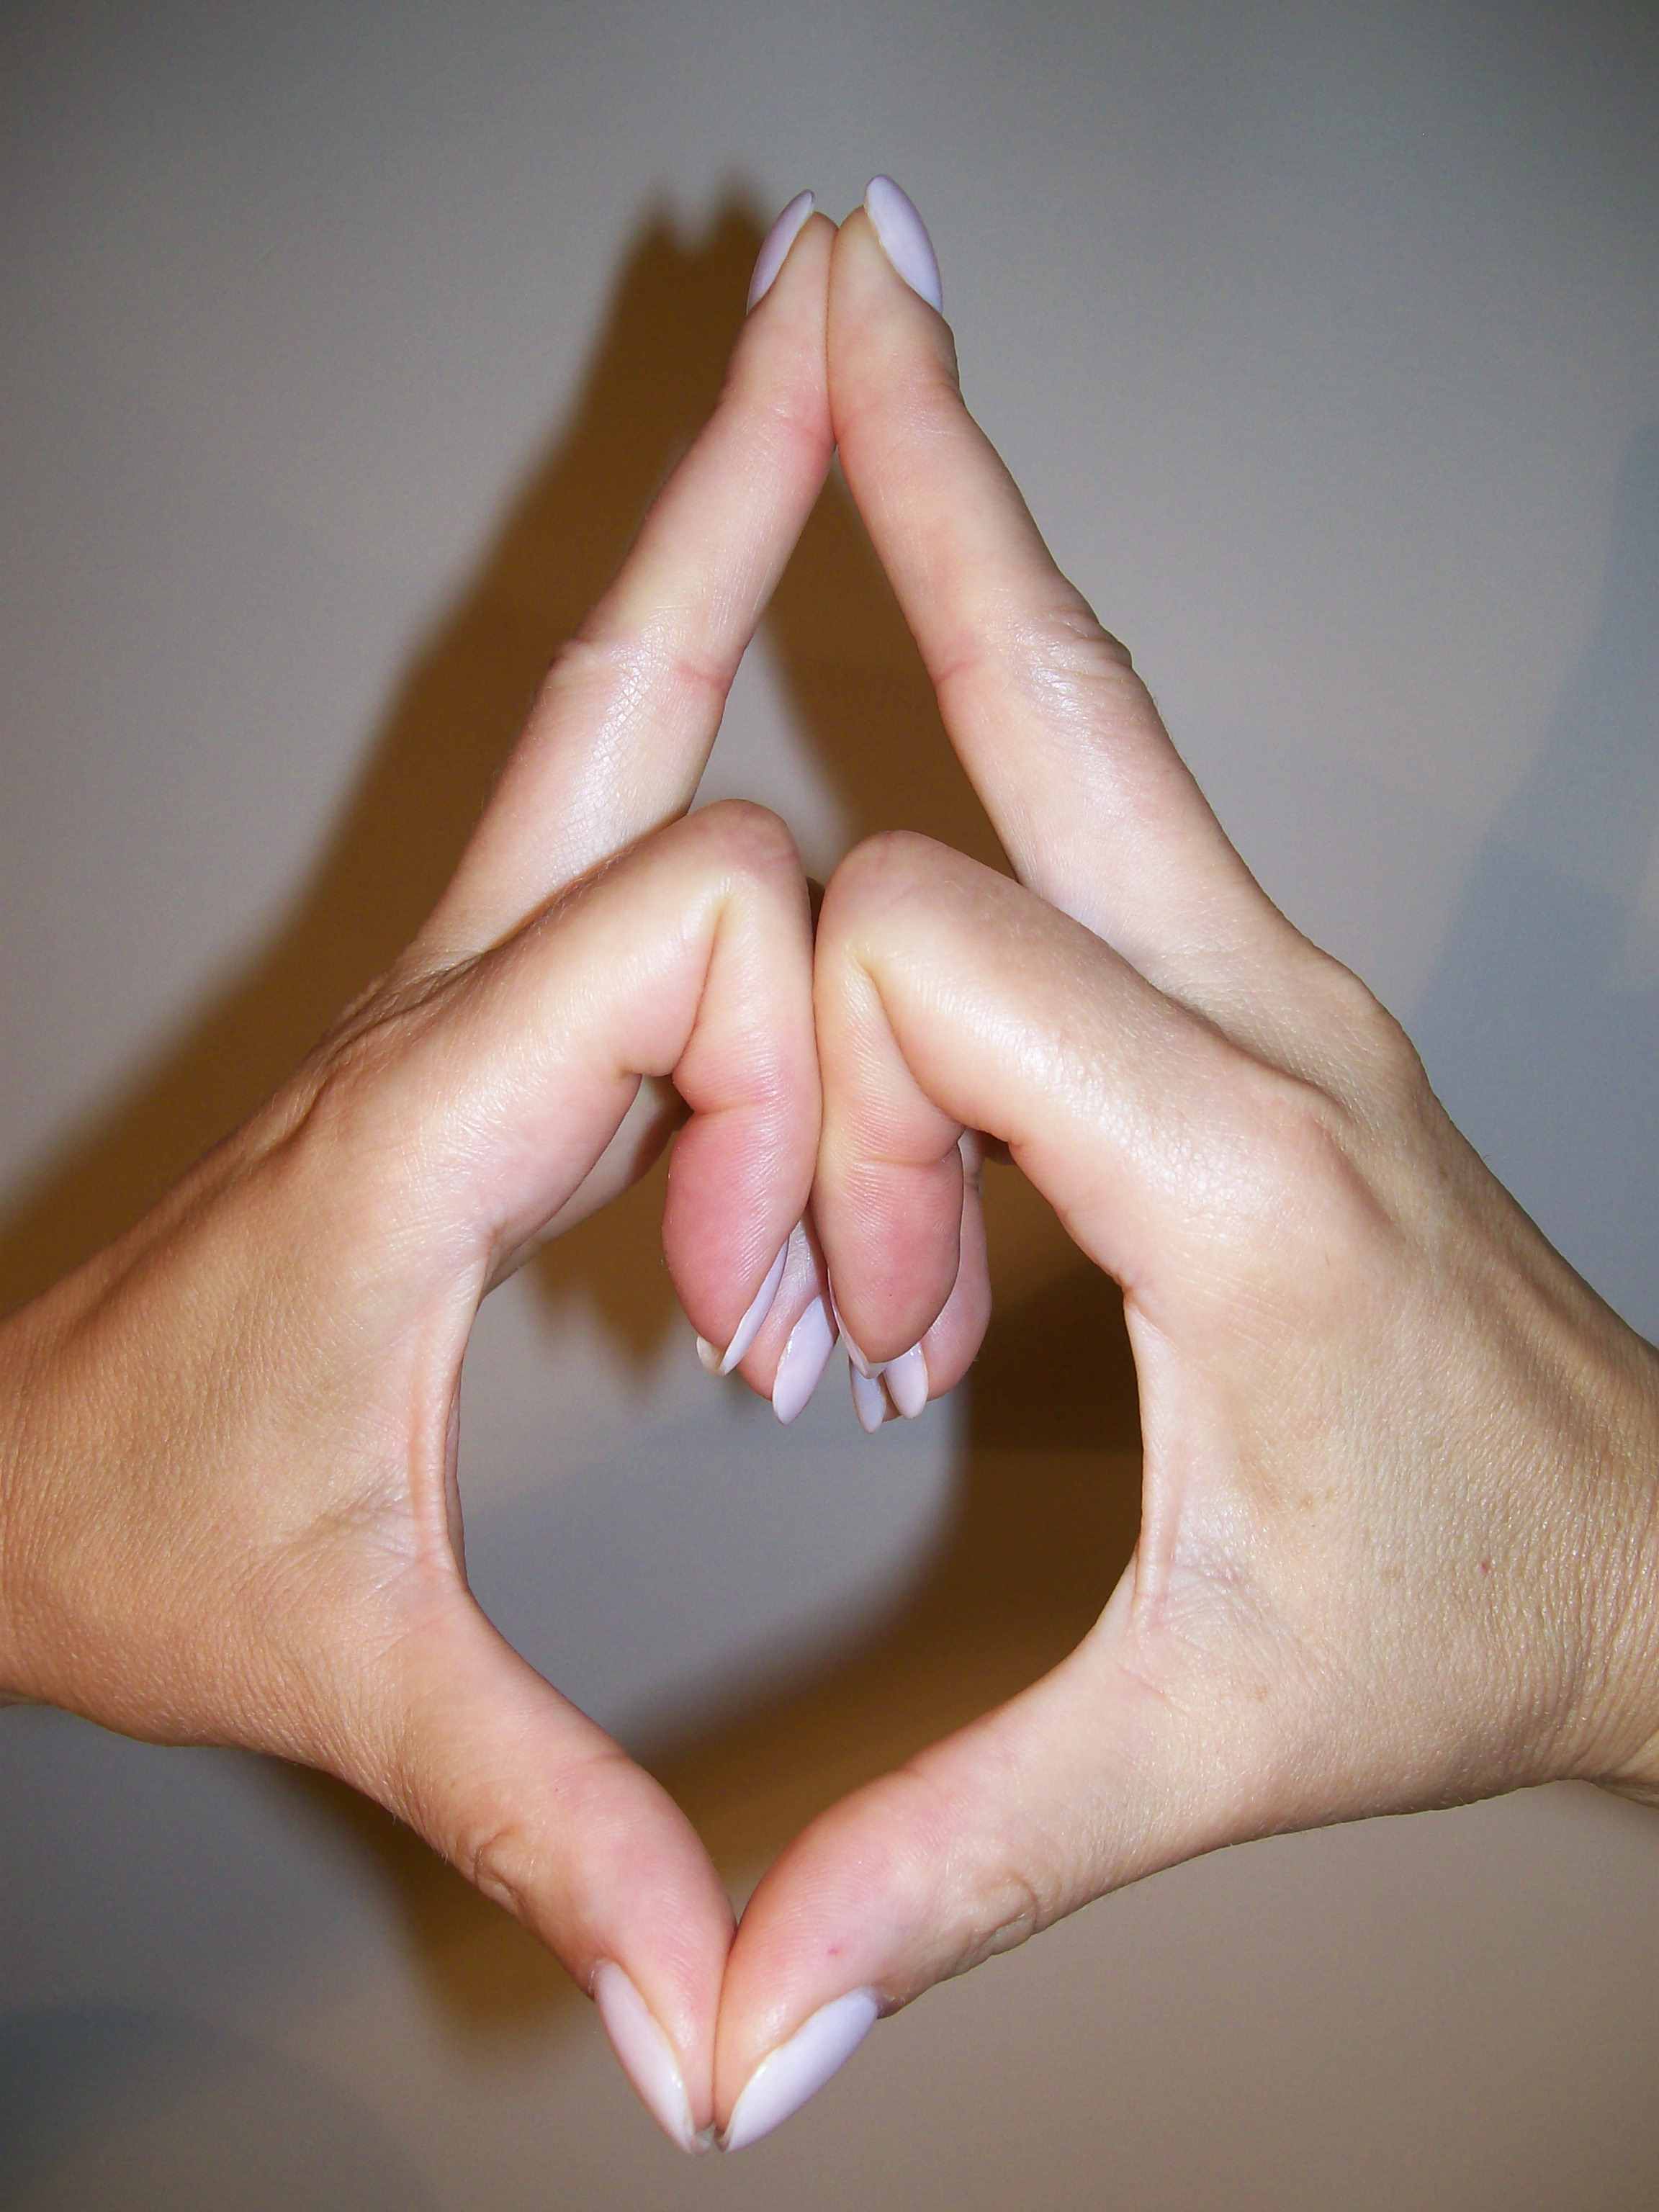 Day 7: Hasta Mudra to Reduce Anxiety and Increase Memory